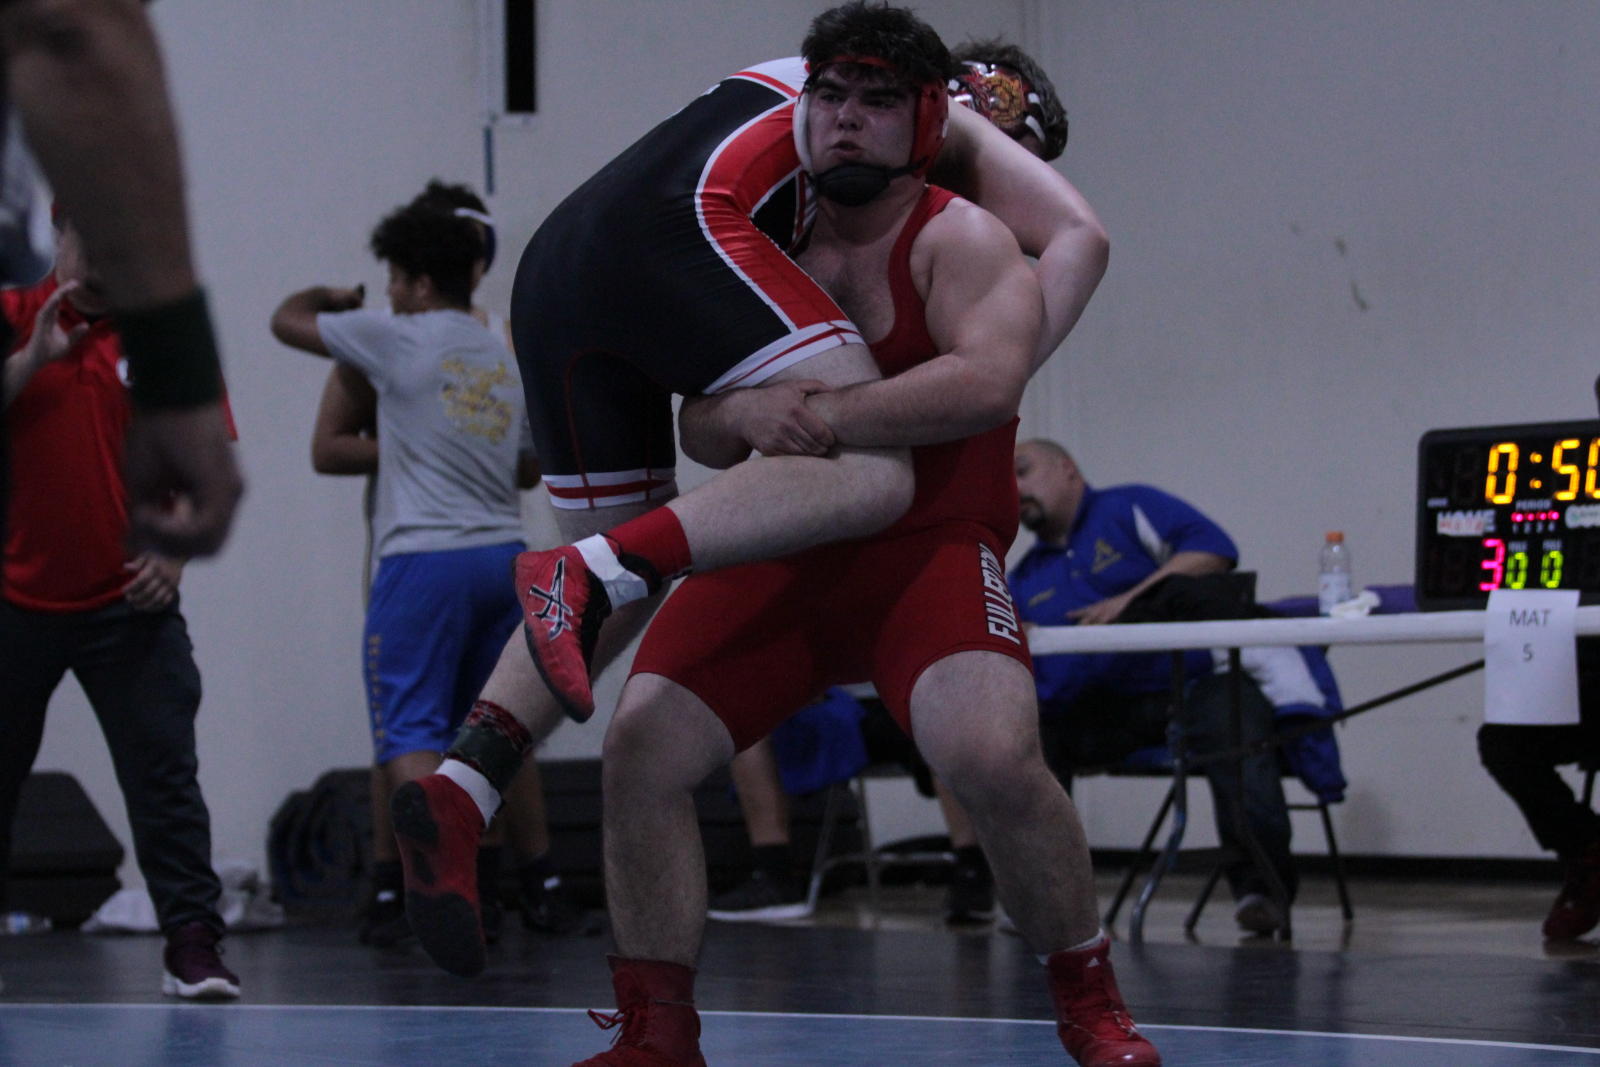 BP defeated 45-25-CIF Wrestling Feb 14-15 at Brea HS